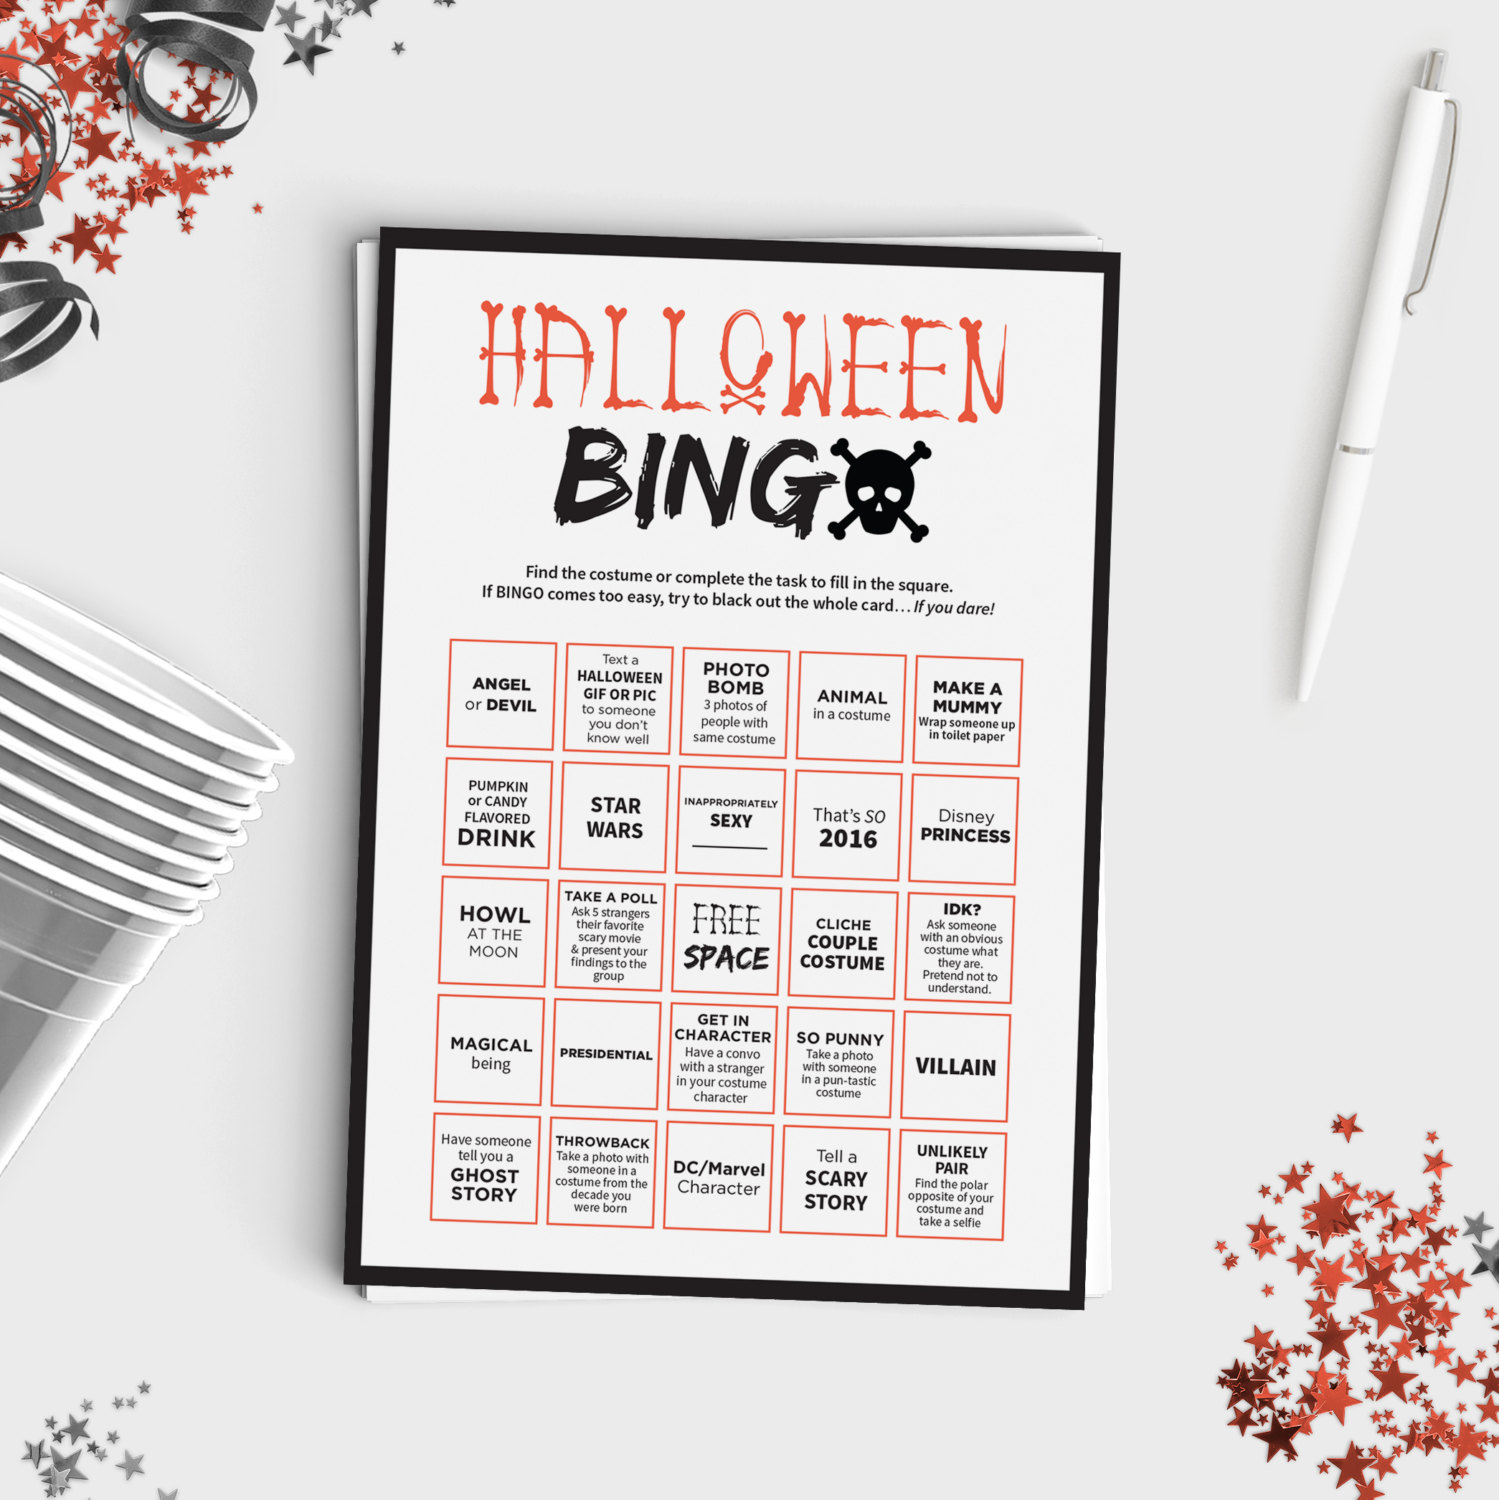 Halloween Bingo Scavenger Hunt | Favors & Stuff